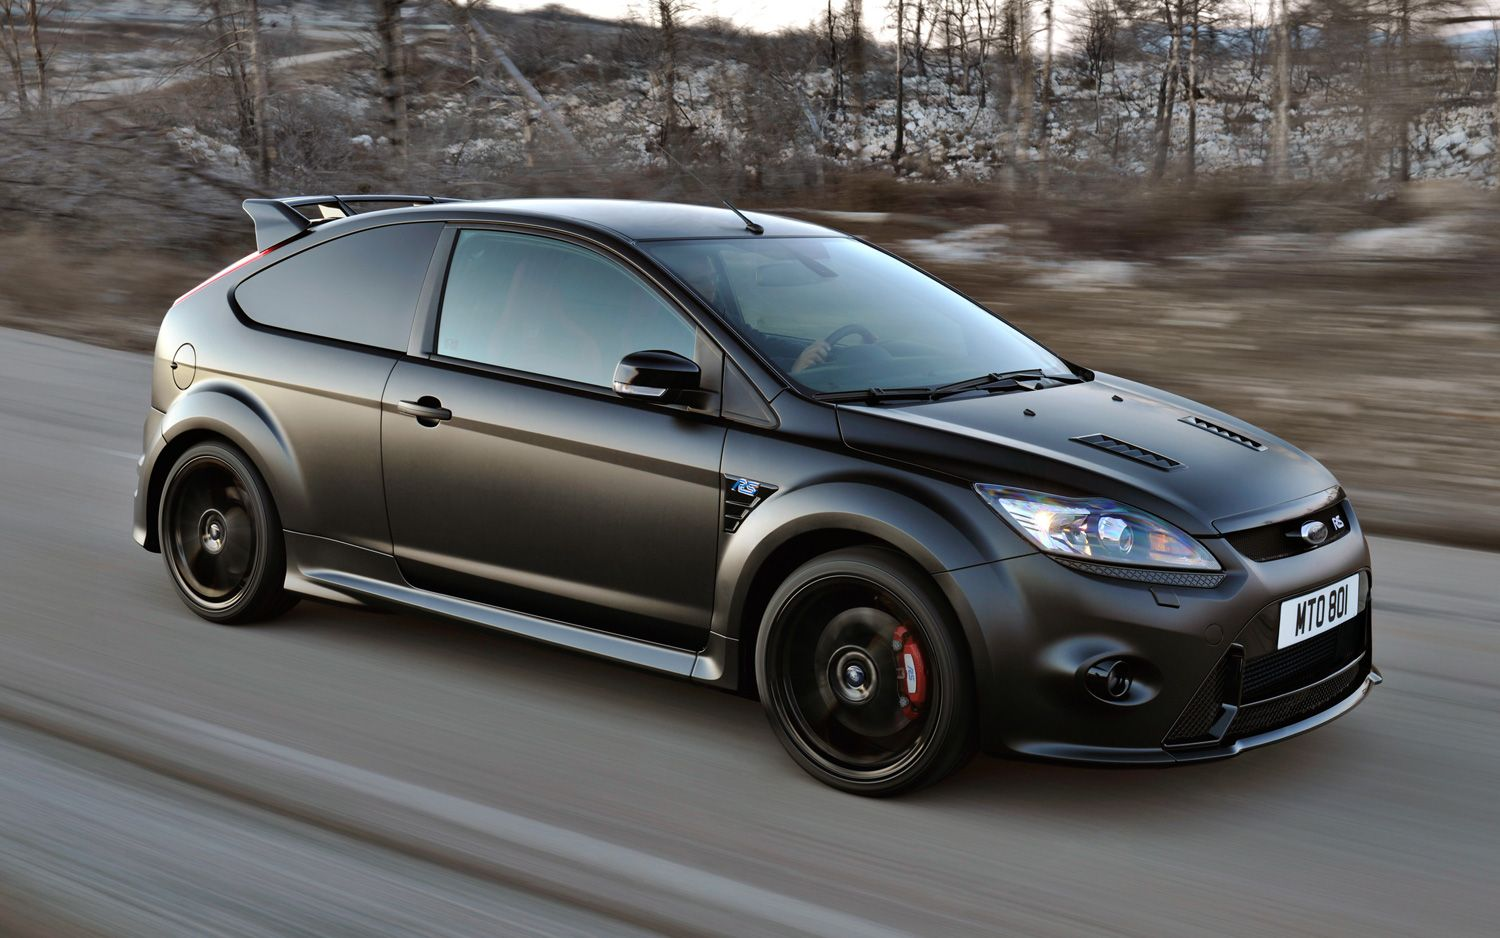 ford focus st cars motorcycles if only i had the money and the rh pinterest com